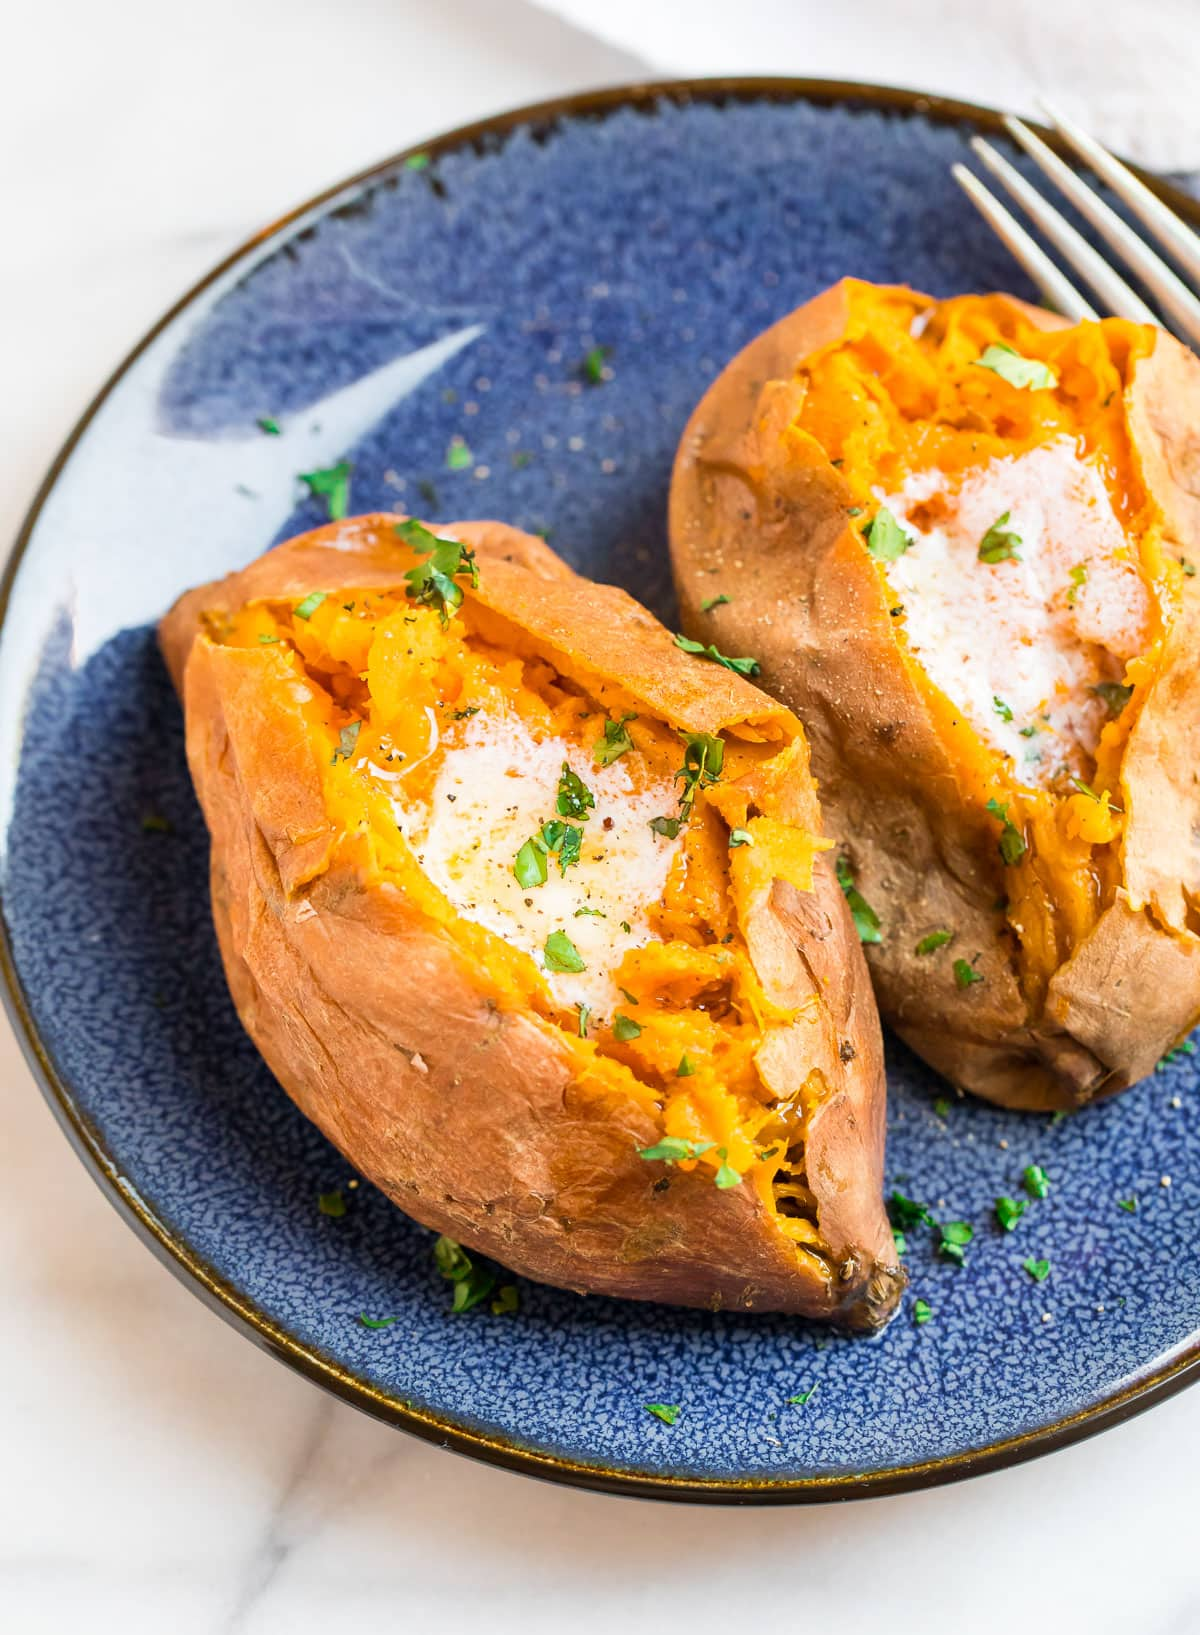 Sweet potatoes with melted butter on a blue plate